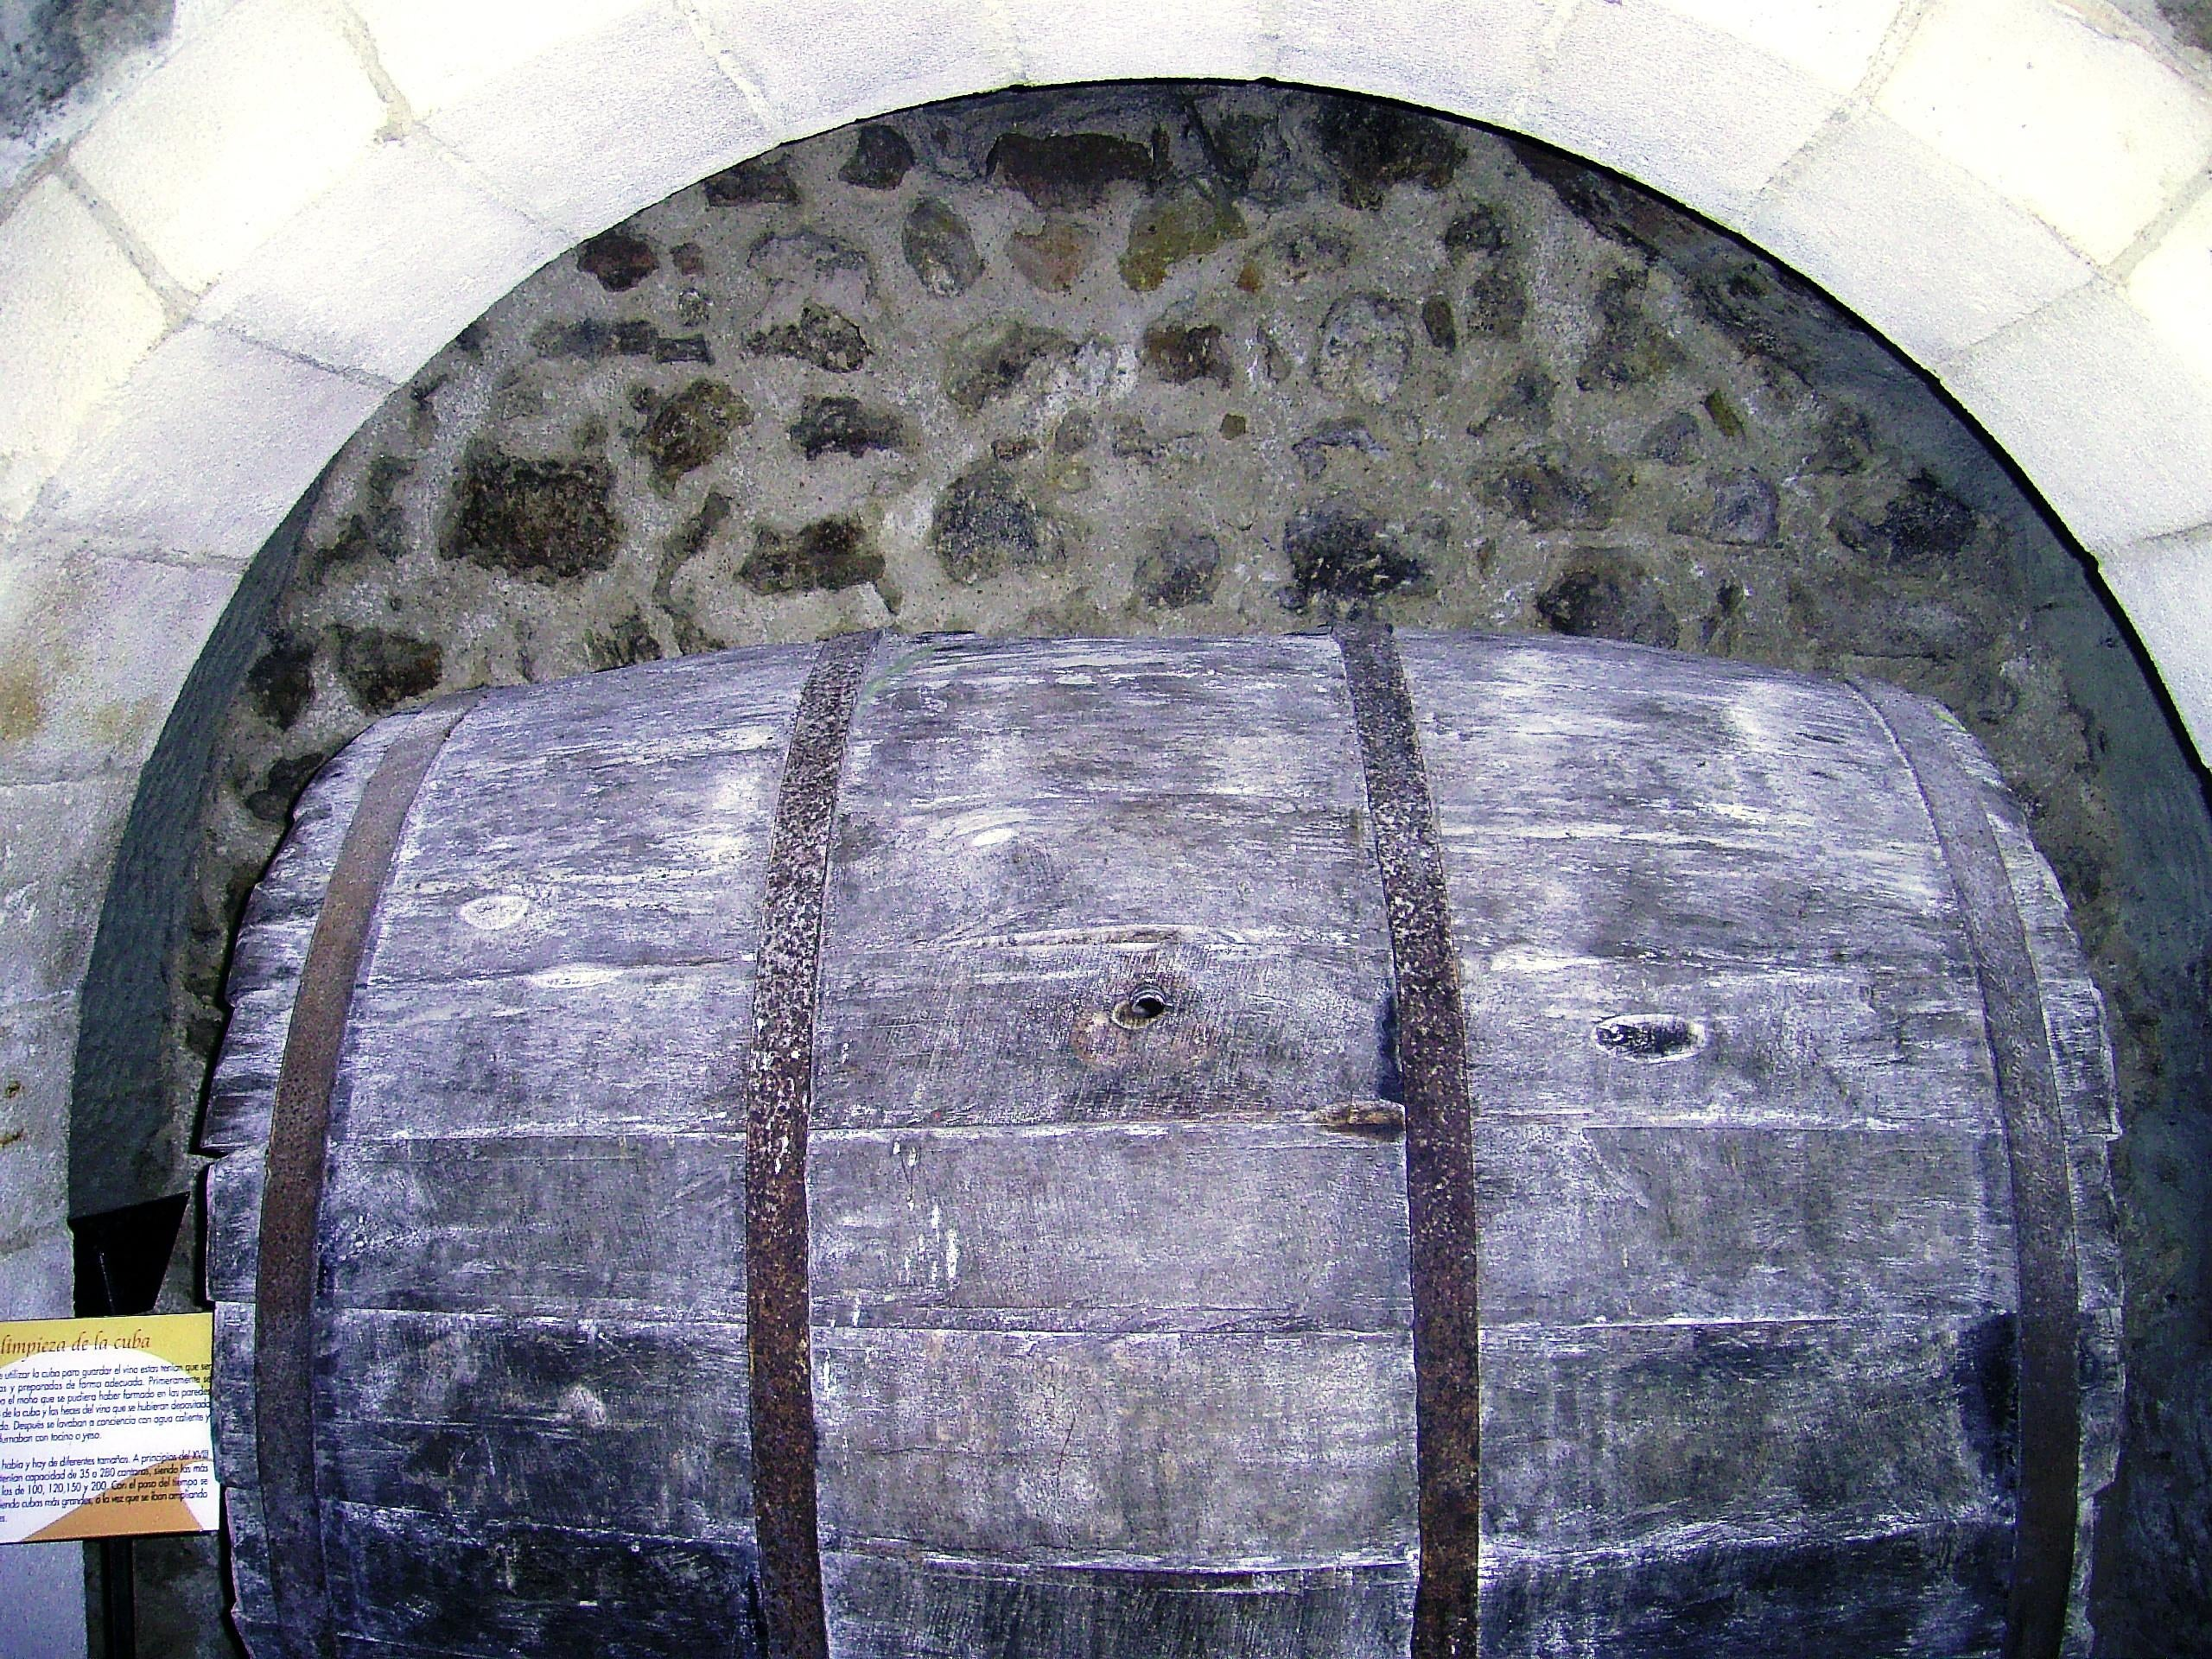 Bodegas de las Ánimas (Cellar of the Souls)